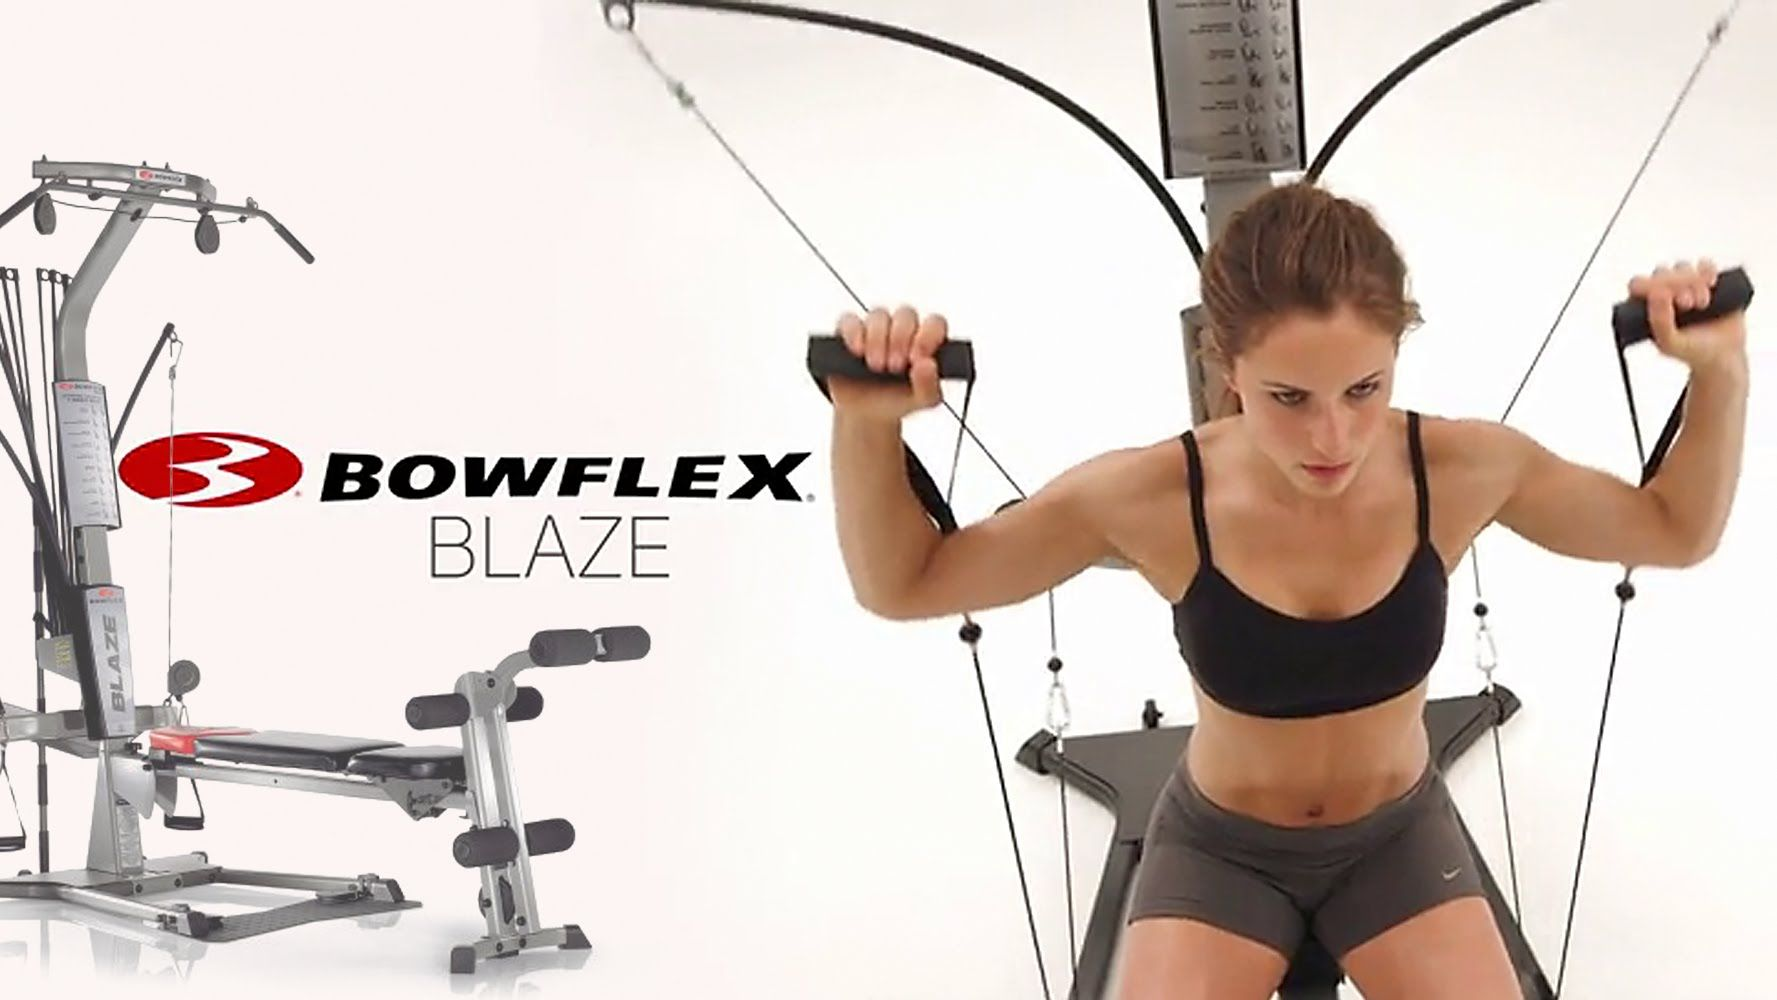 All About The Bowflex Blaze Home Gym Https Storify Com Fitbodybuzz All About The Bowflex Blaze Home Gym Ho Bowflex Blaze Fitness Advice Best Workout Routine